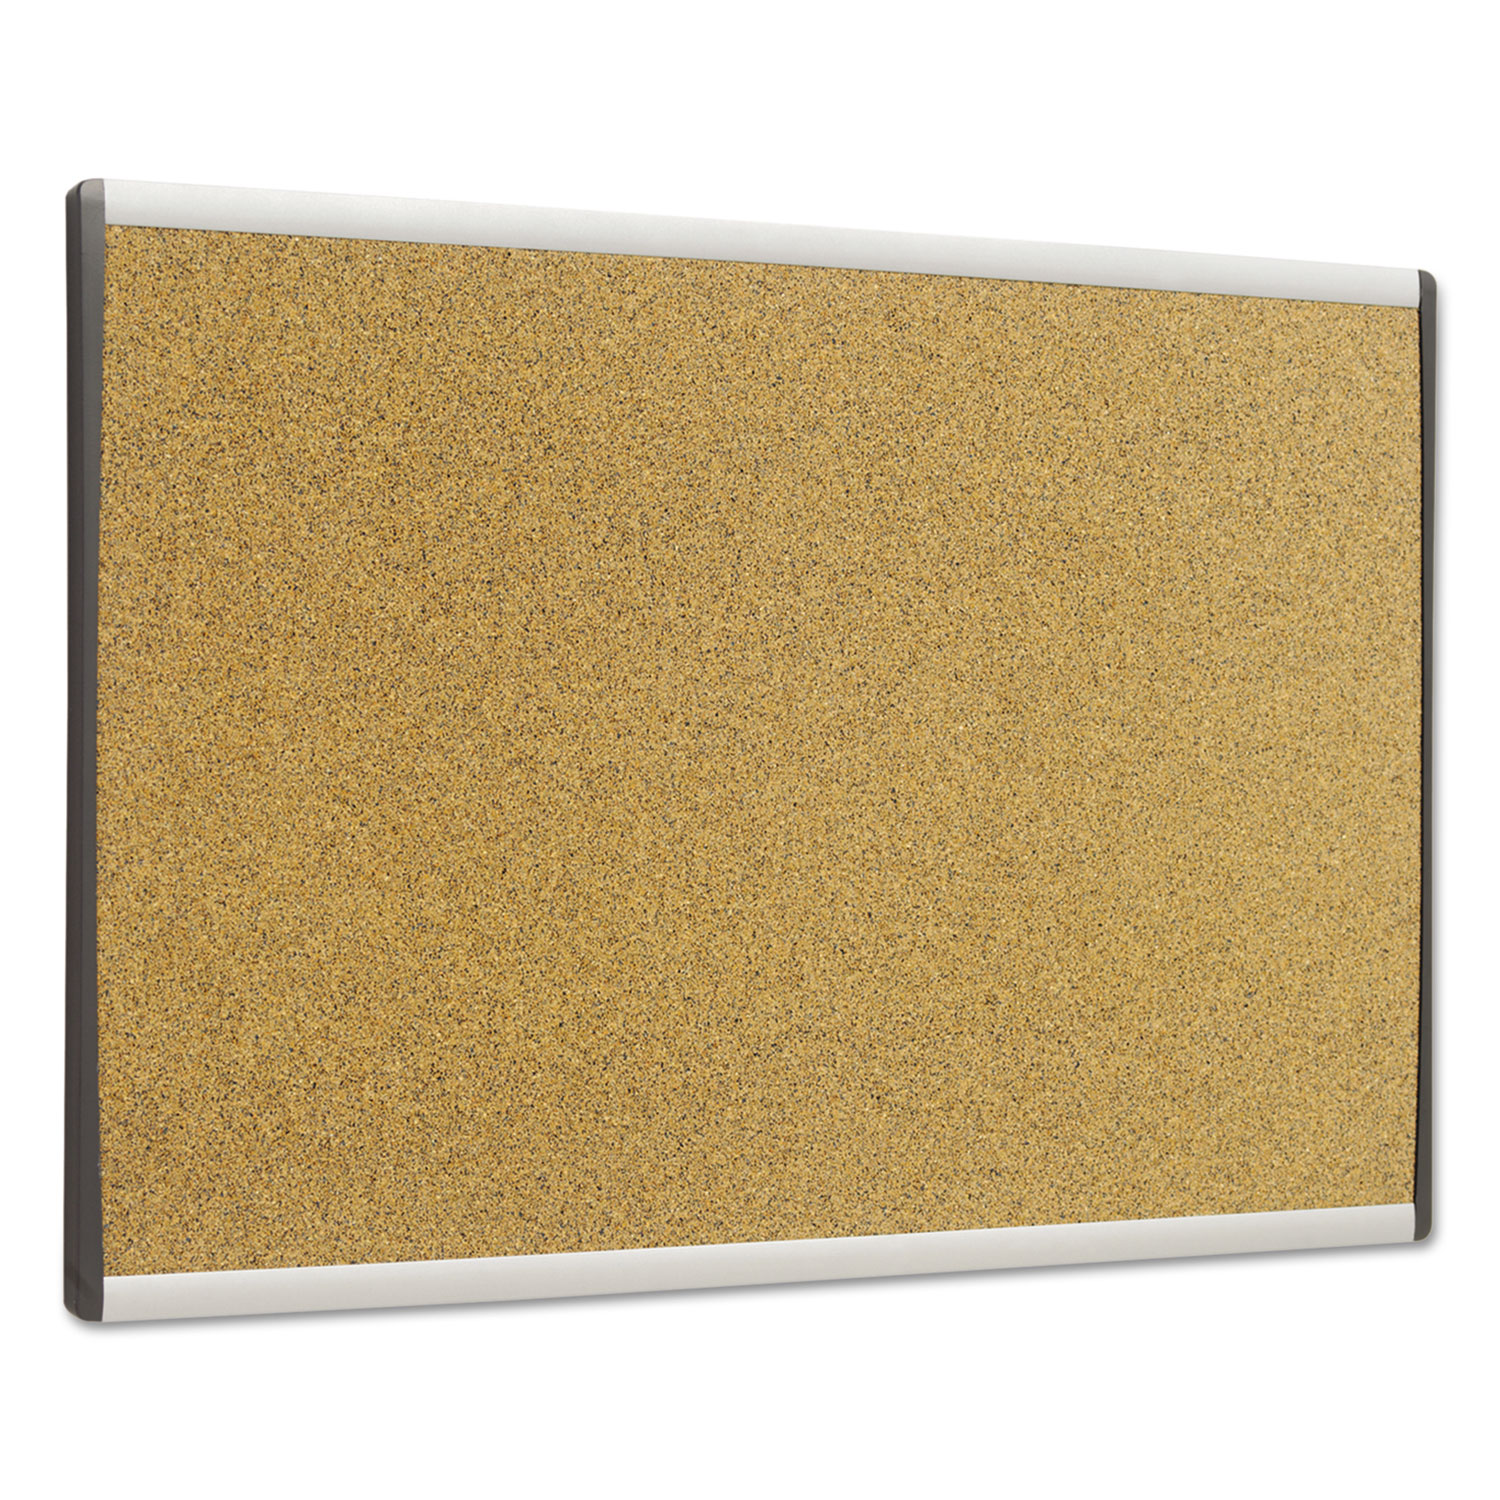 Picture of ARC Frame Cork Cubicle Board, 14 x 24, Tan, Aluminum Frame